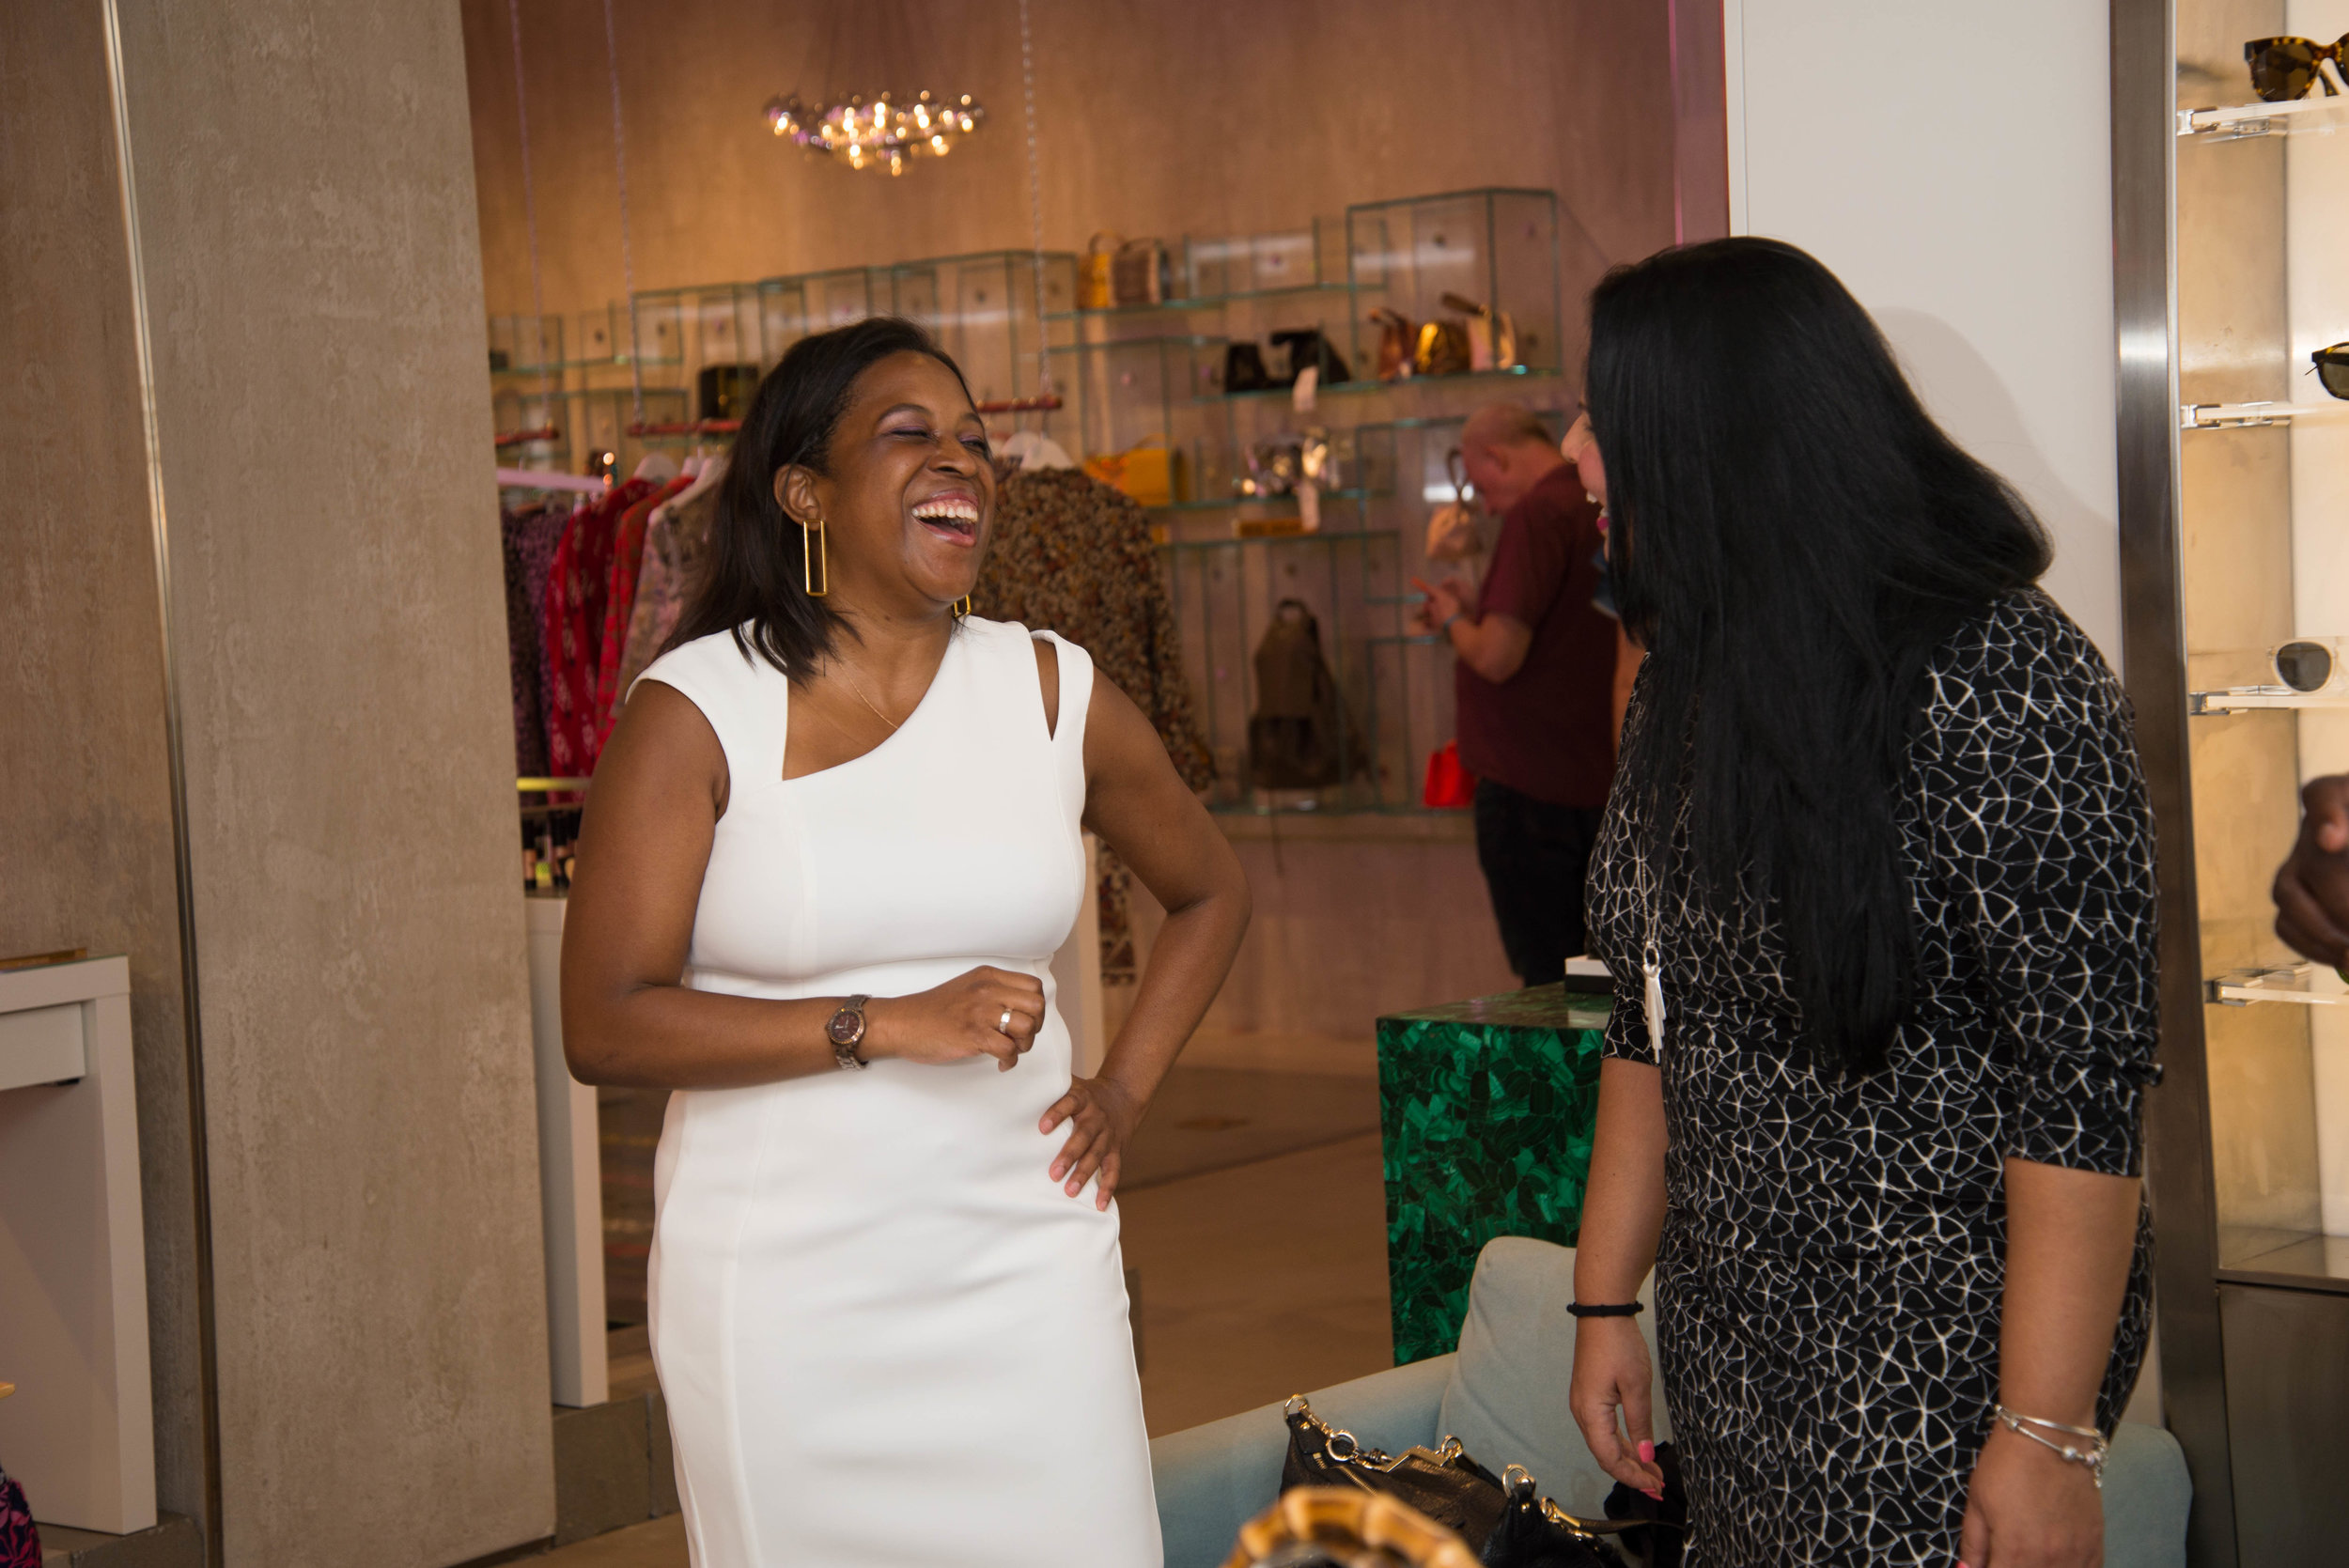 (L-R) Designer of Emme Cadeau and Attendee